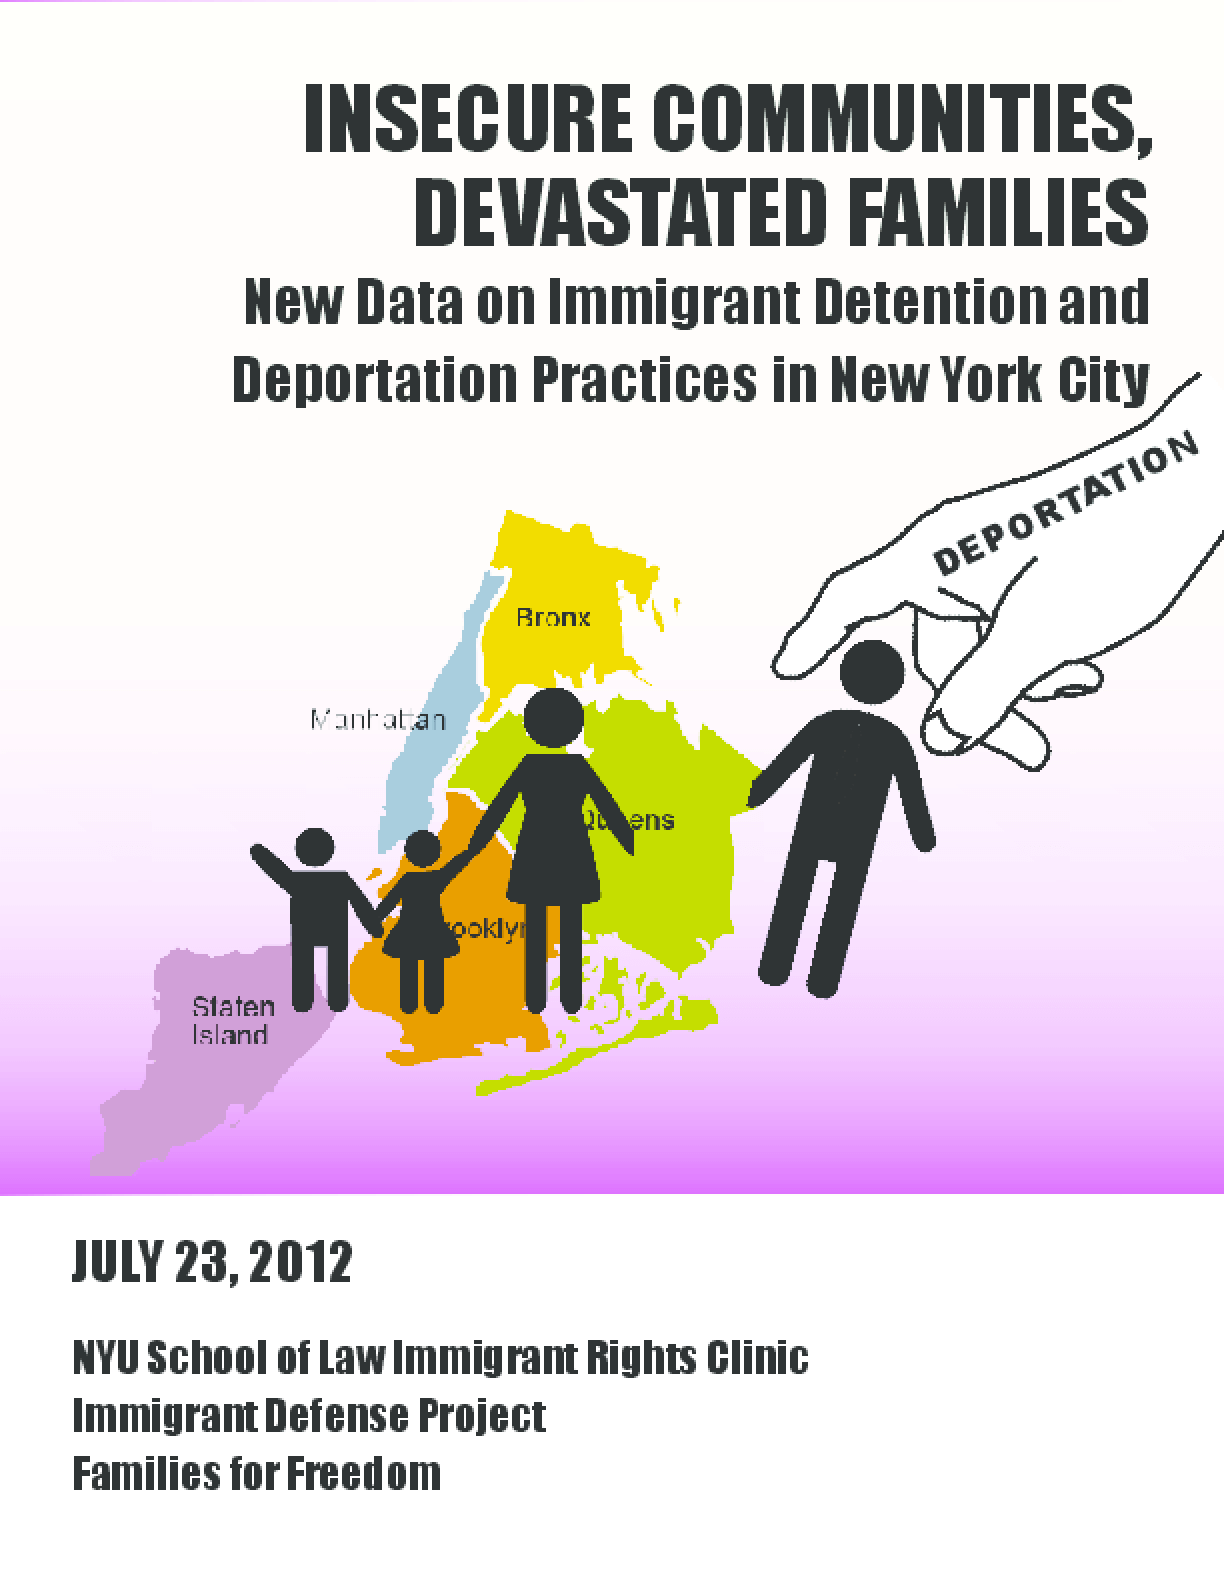 Insecure Communities, Devastated Families: New Data on Immigrant Detention and Deportation Practices in New York City?